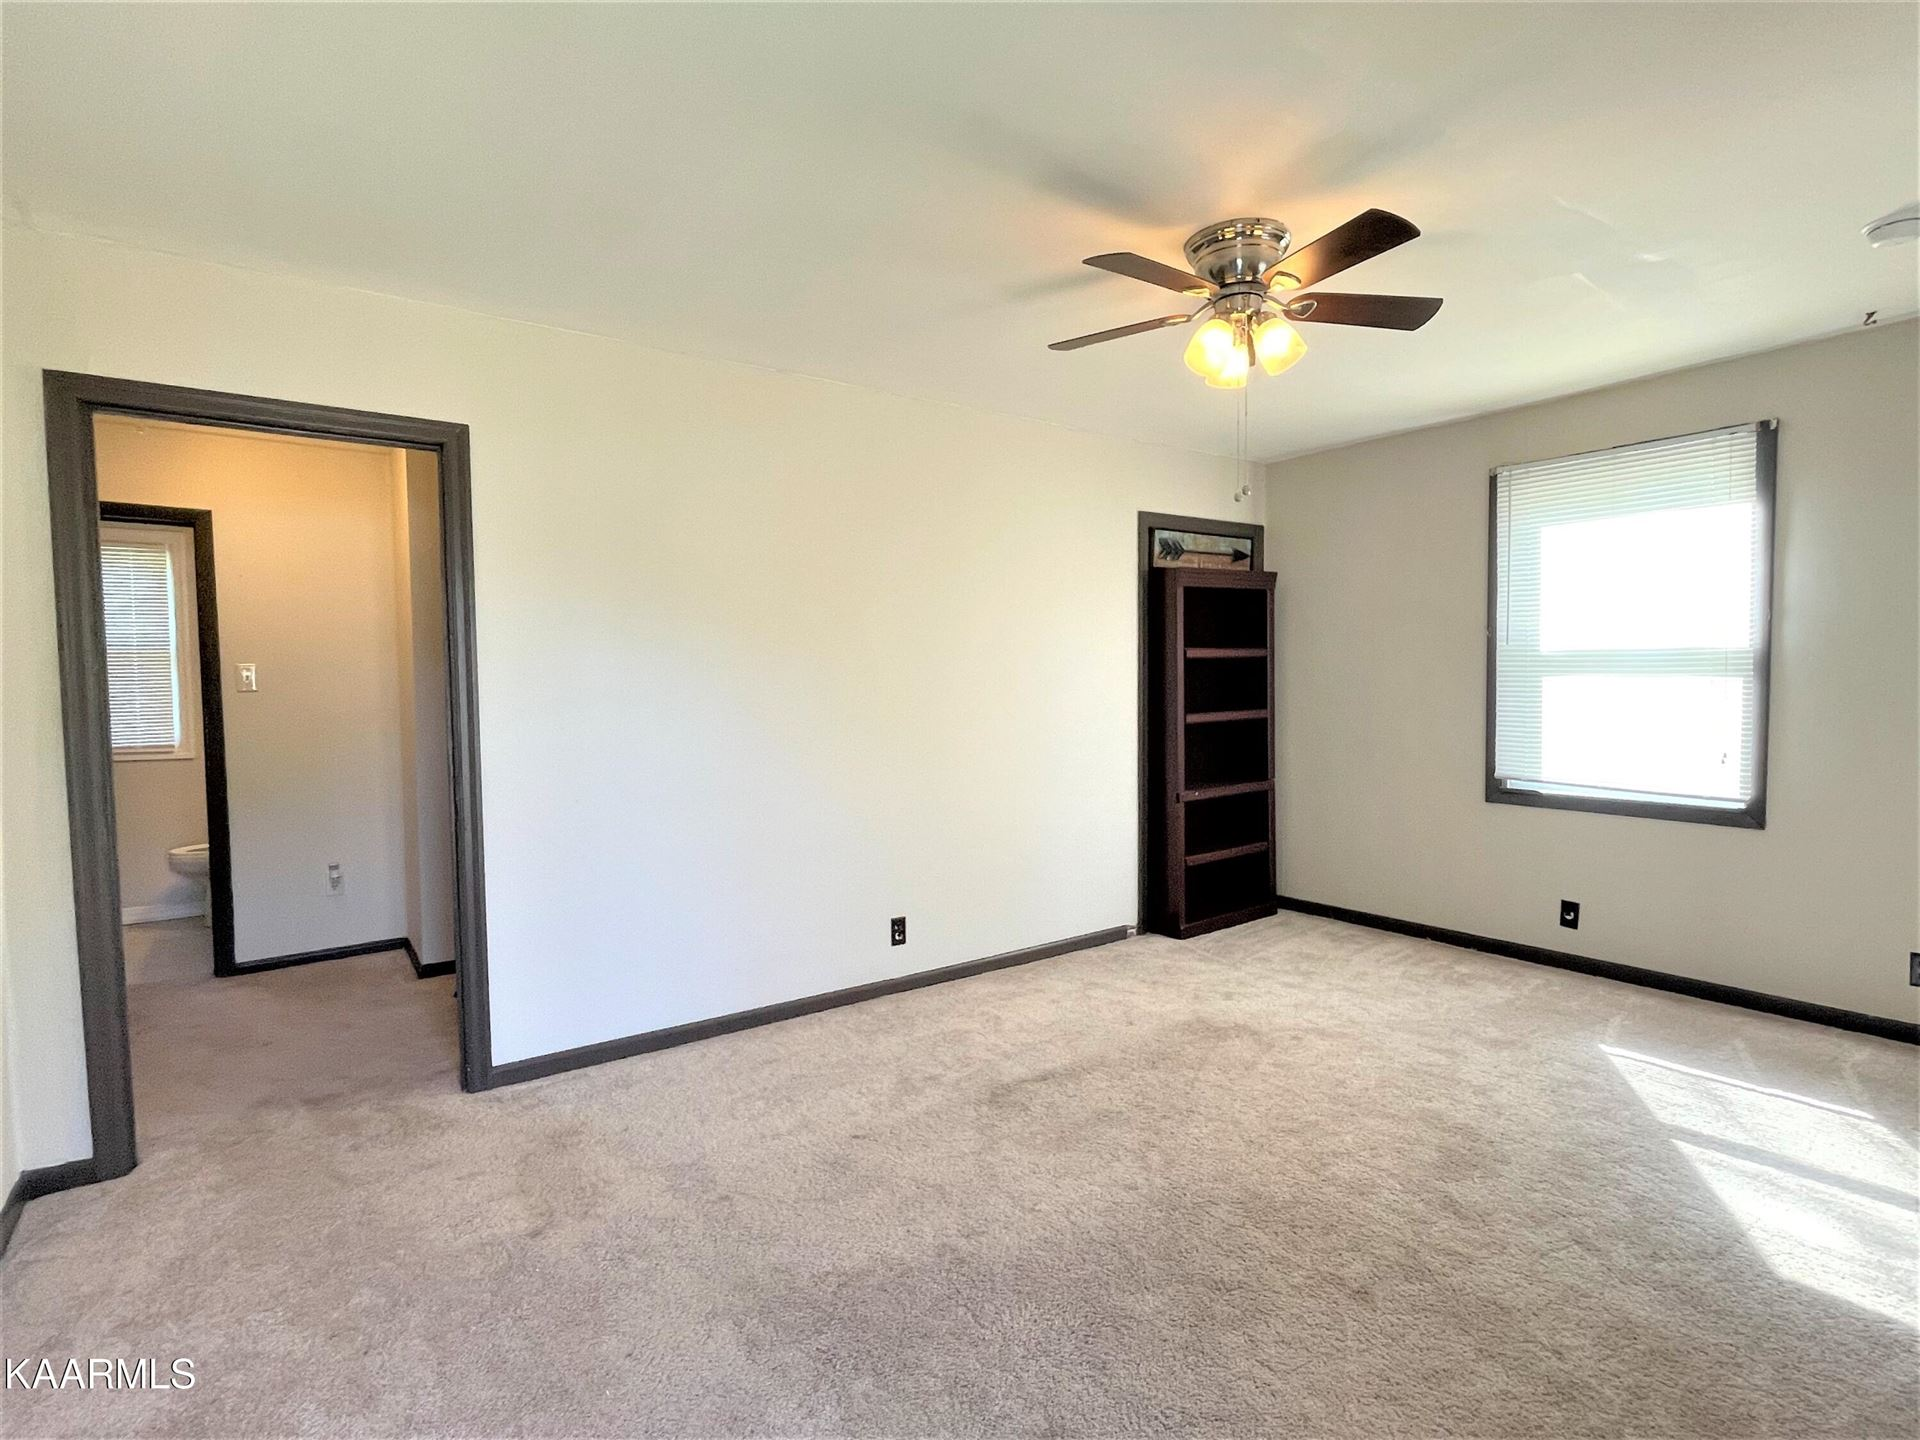 Photo of 3400 Feathers St, Knoxville, TN 37920 (MLS # 1170945)